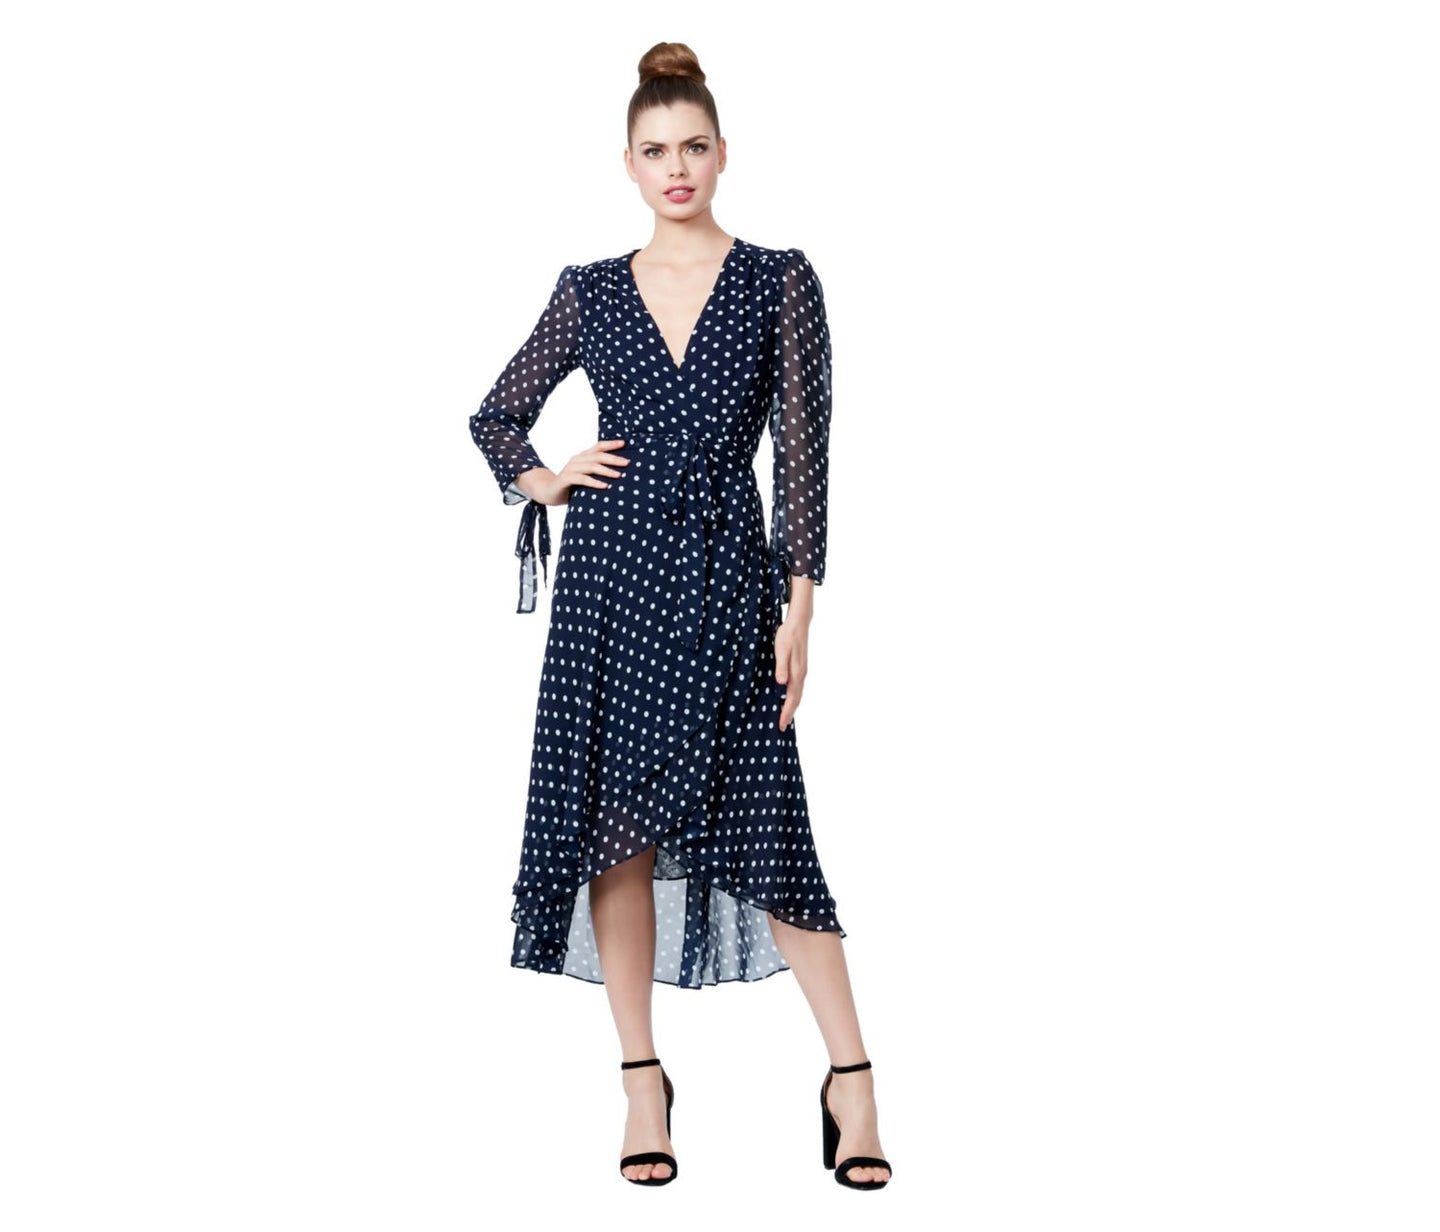 CRAZY FOR DOTS WRAP DRESS NAVY - APPAREL - Betsey Johnson